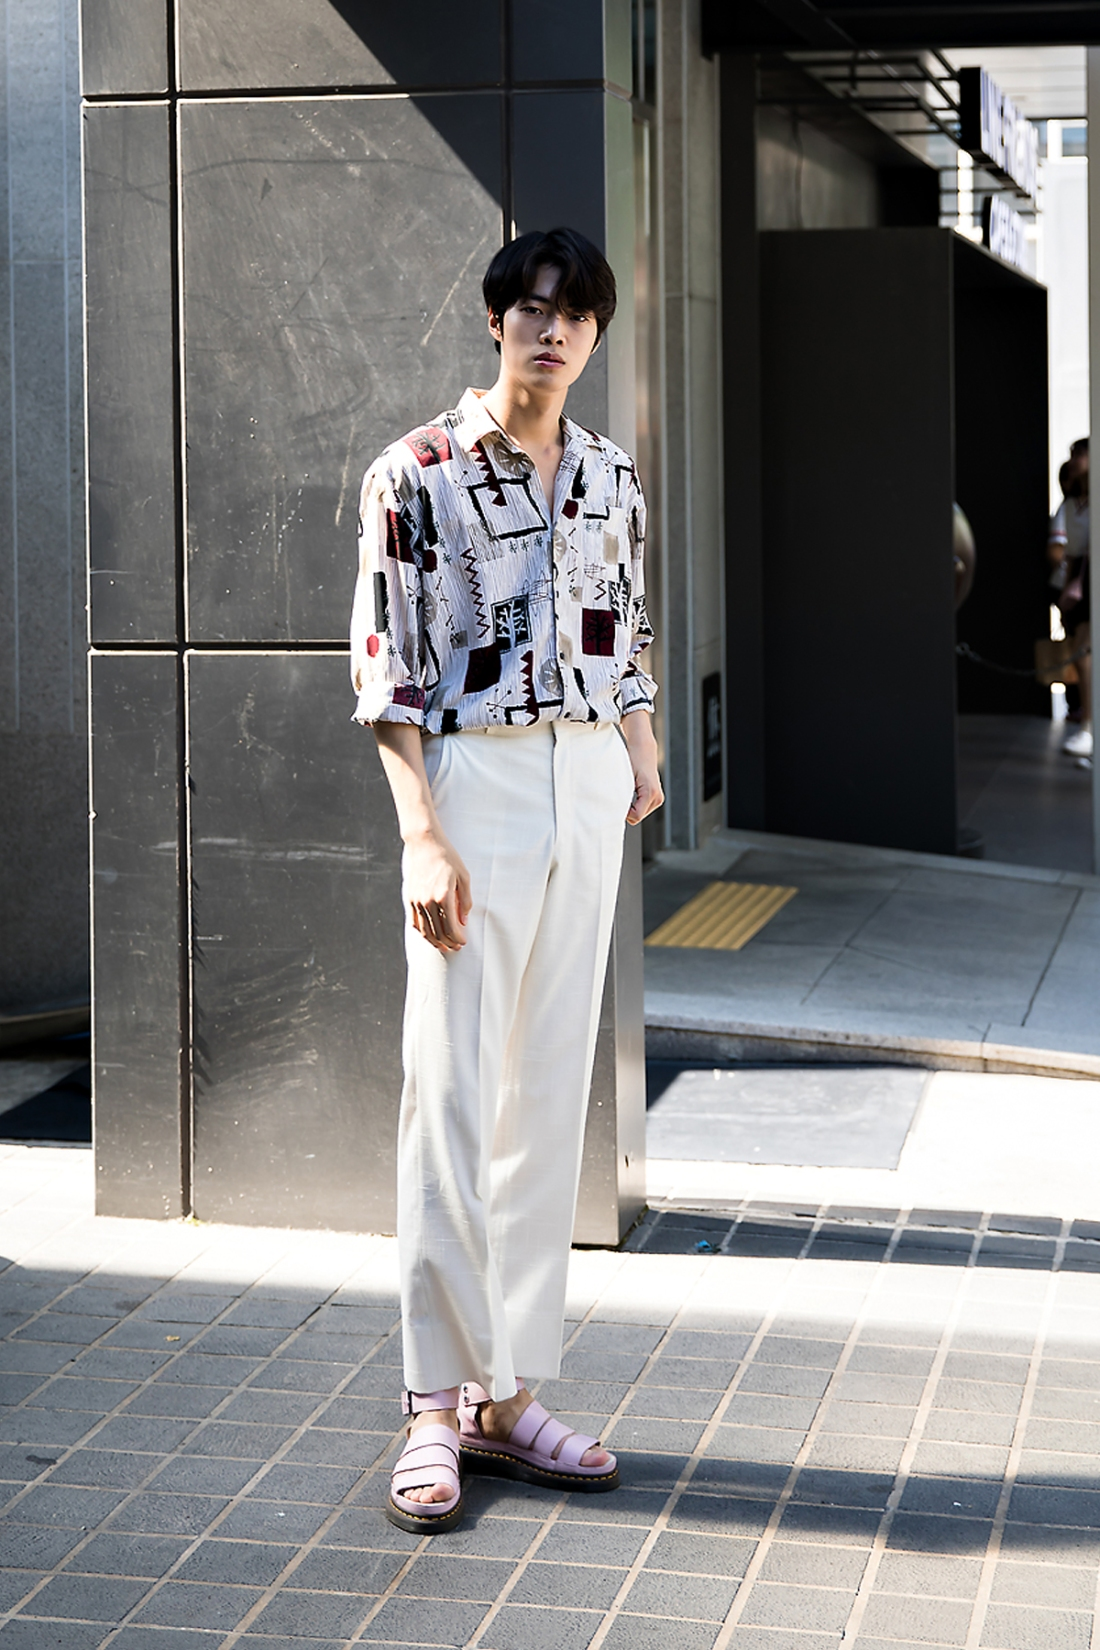 Ko Woongho, Street Fashion 2017 in Seoul.jpg